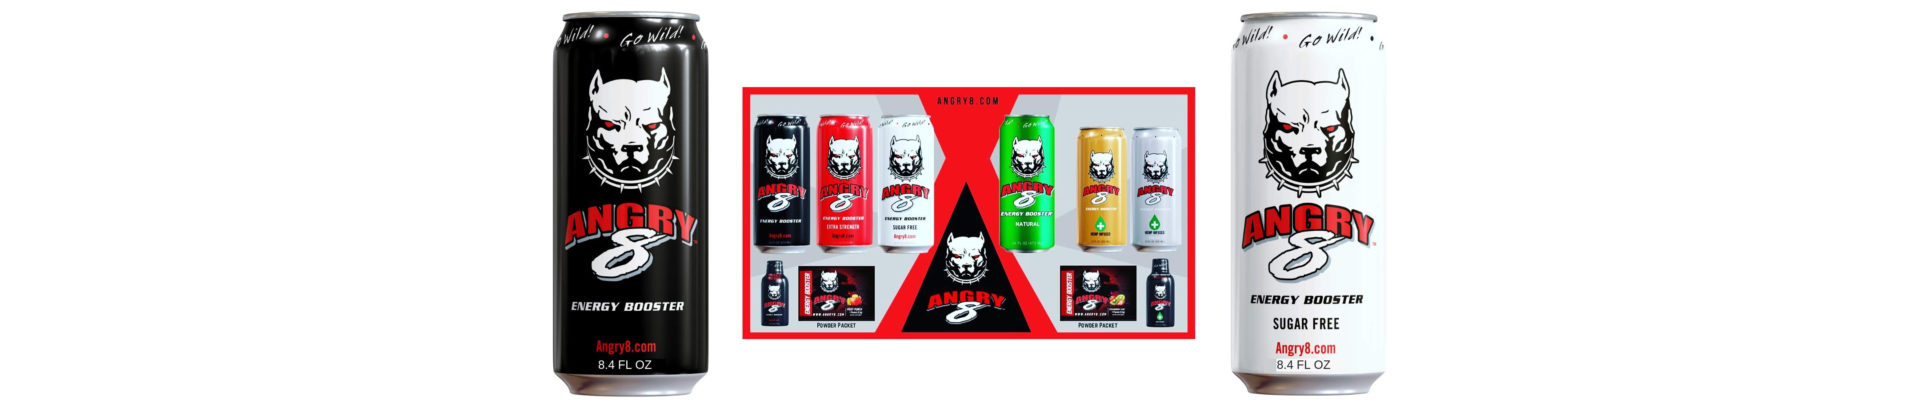 angry8 energy drink